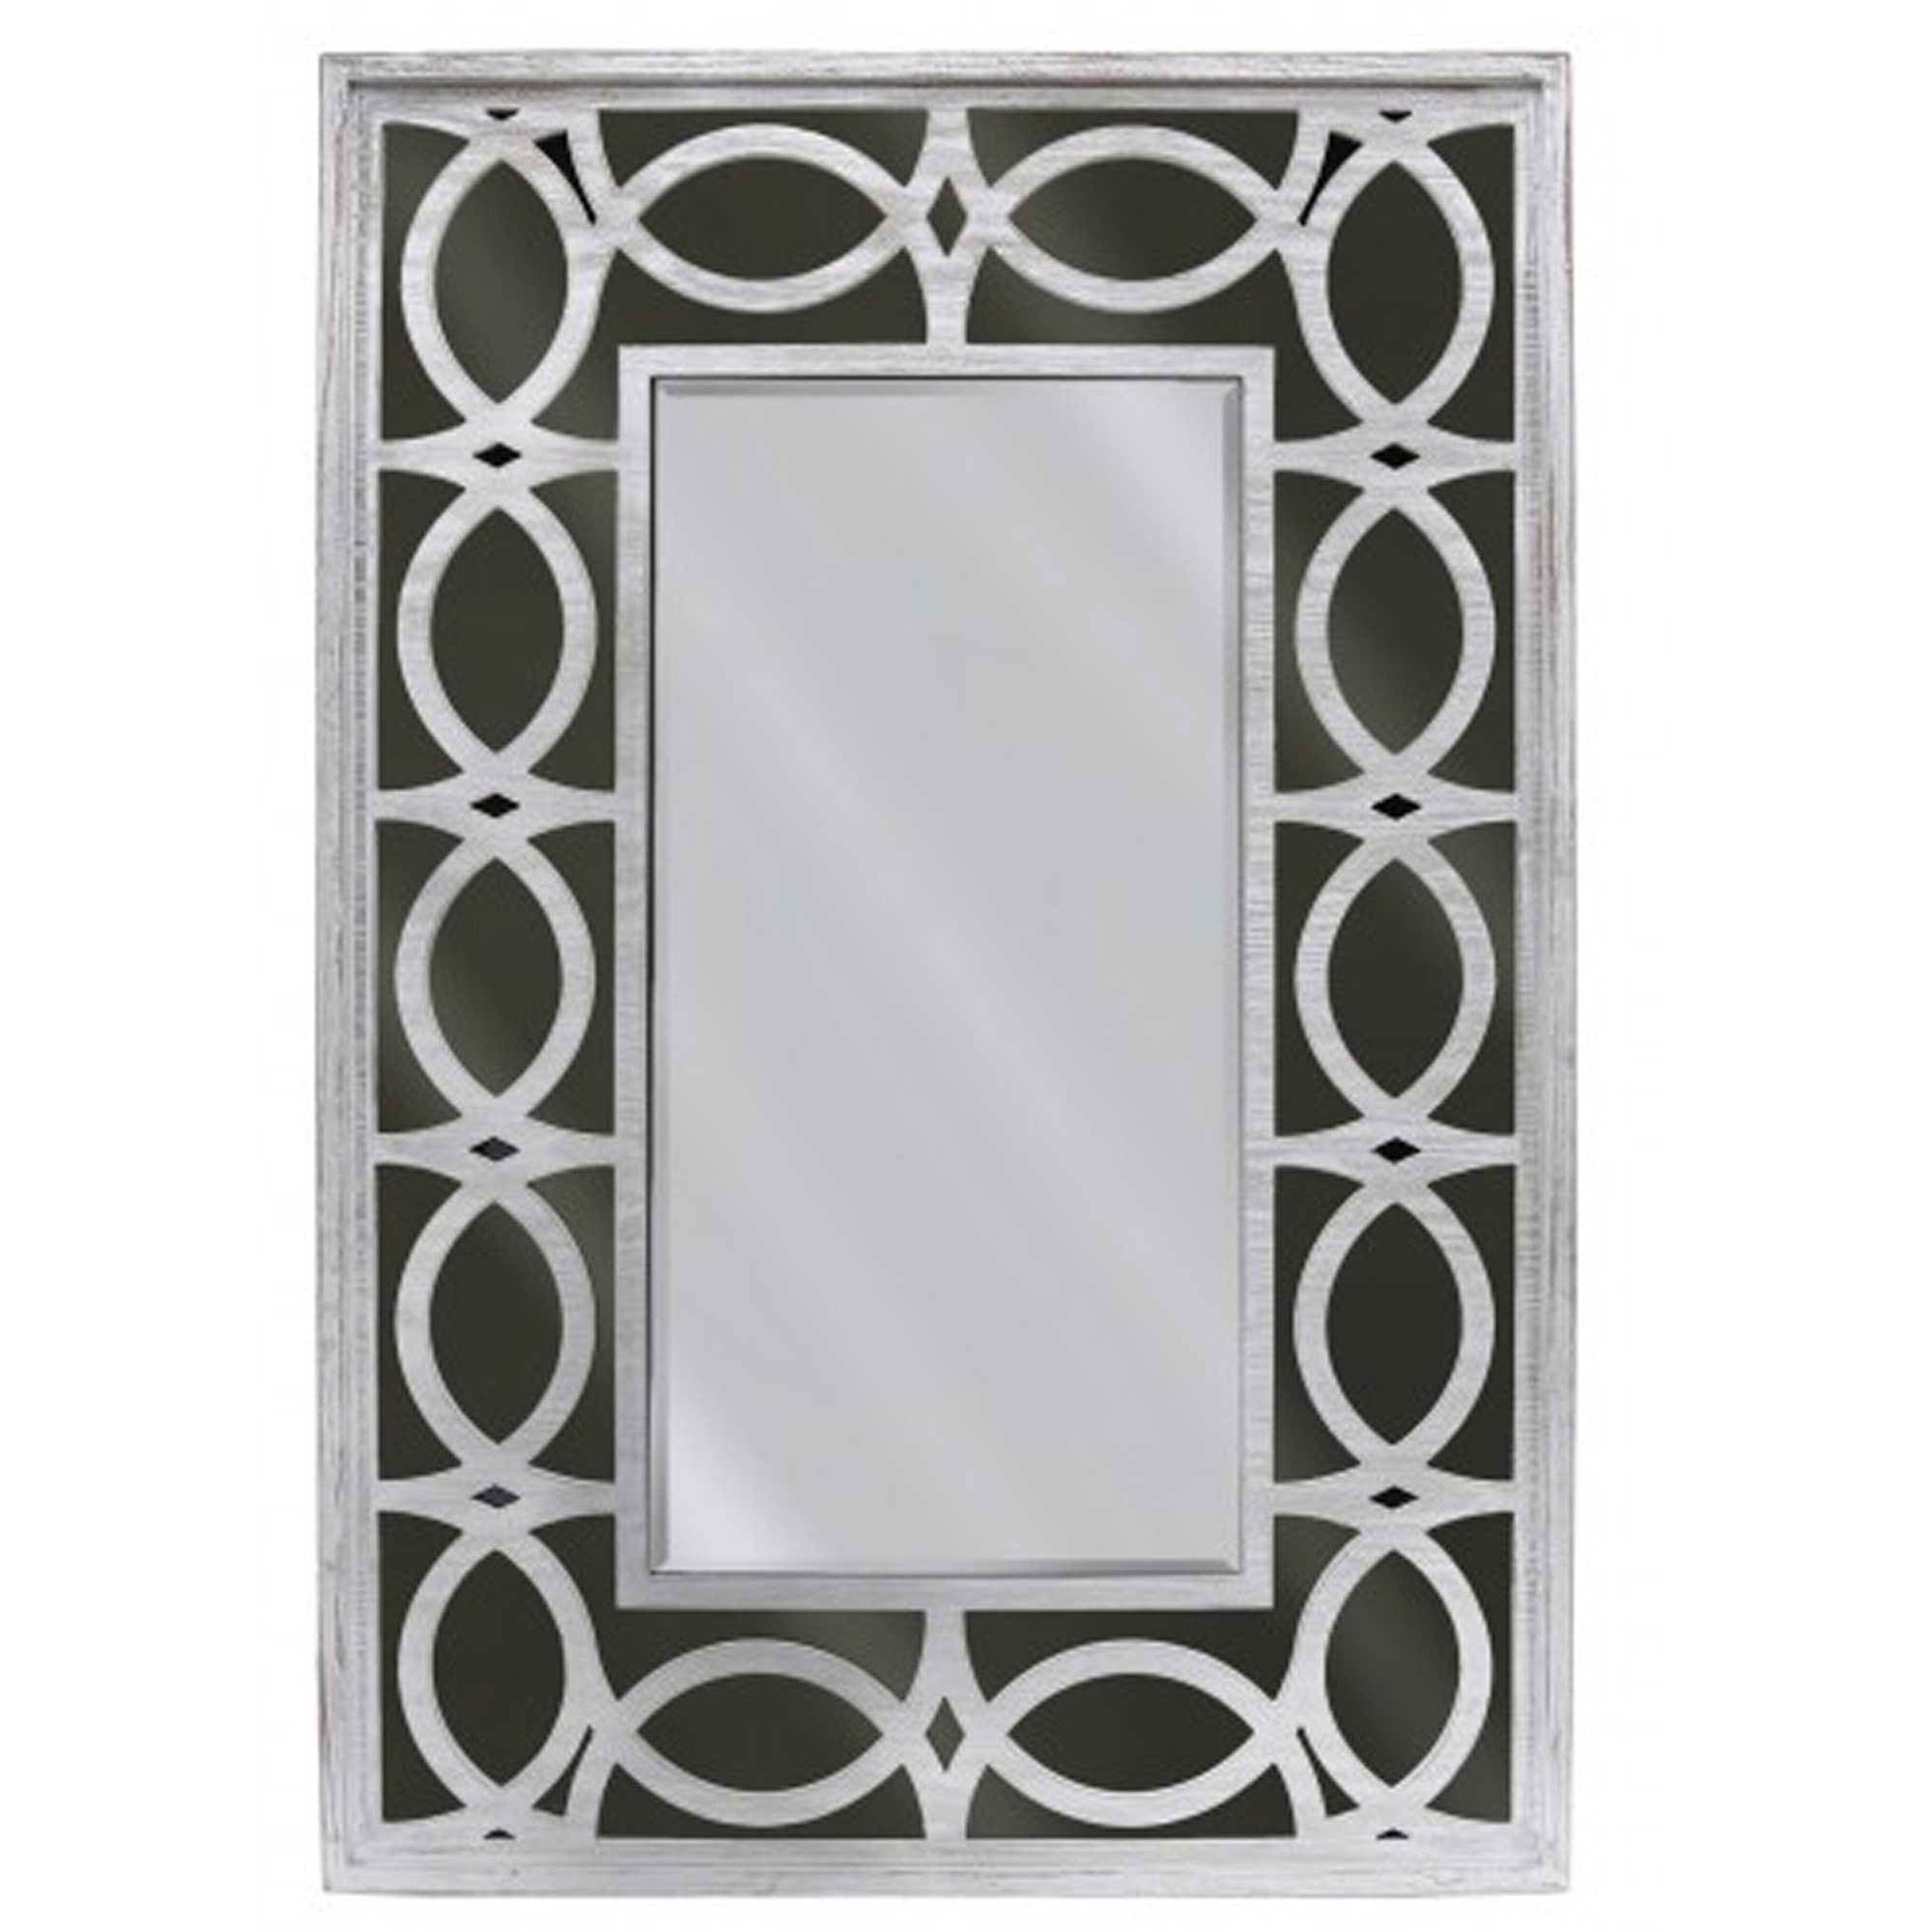 Black And Silver Wall Mirrors Regarding Well Liked Black & Silver Decorative Wall Mirror (View 5 of 20)